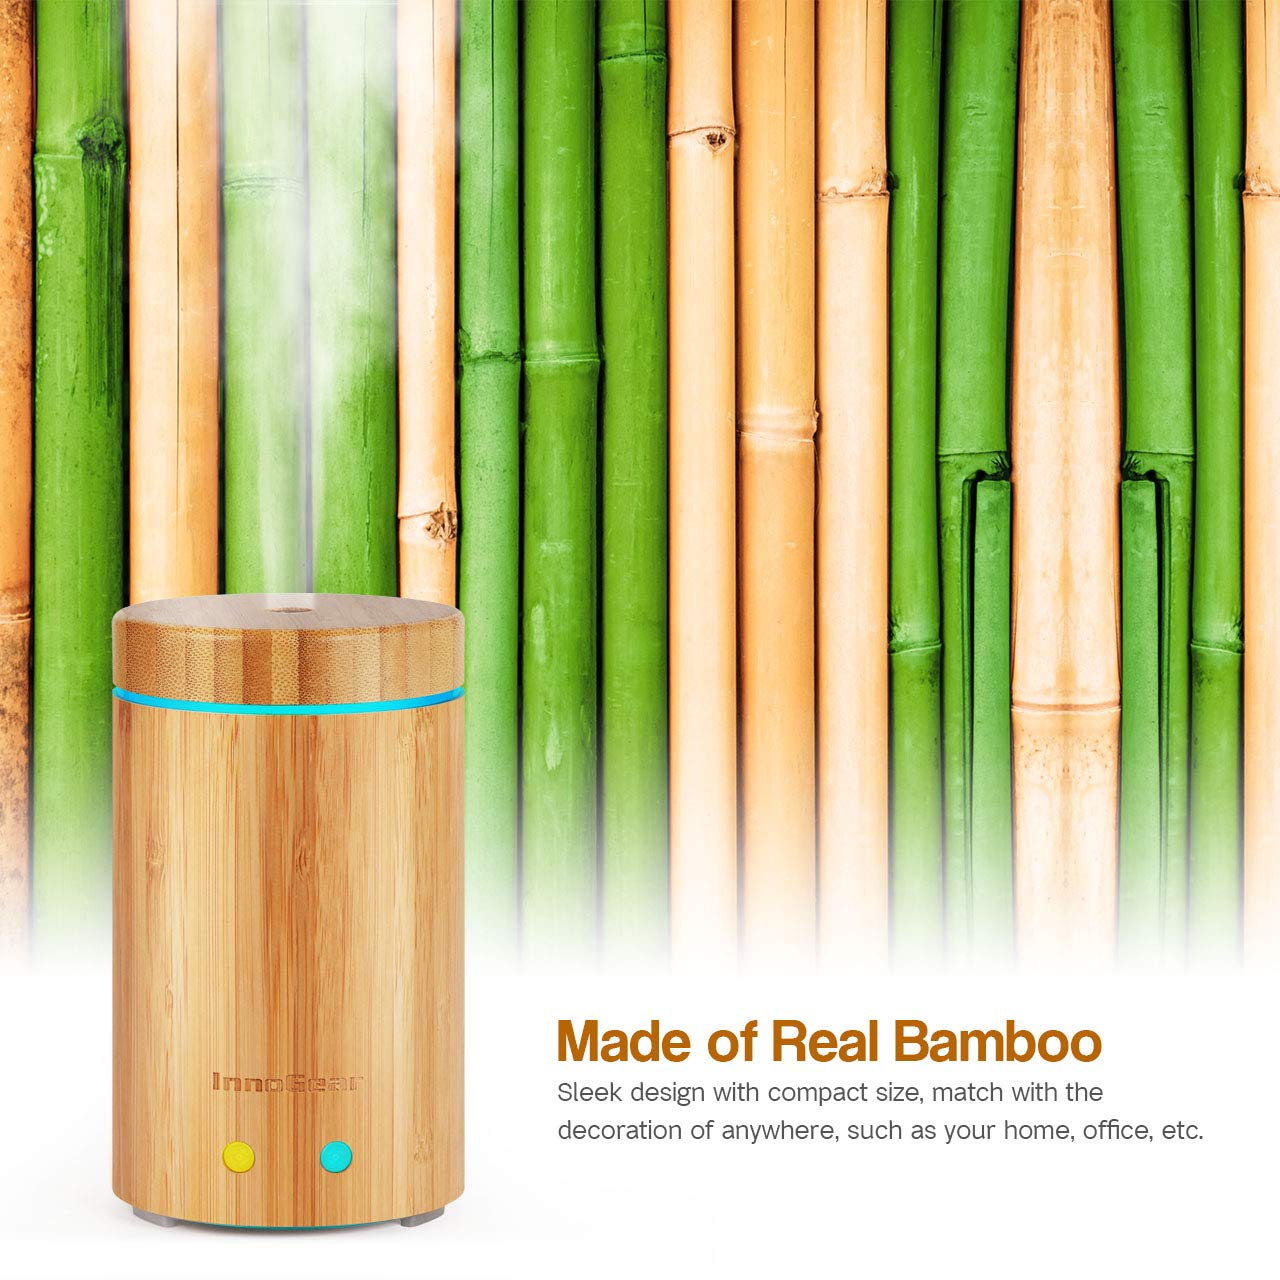 InnoGear Upgraded Real Bamboo Essential Oil Diffuser Ultrasonic Aroma Aromatherapy Diffusers Cool Mist Humidifier with Intermittent Continuous Mist 2 Working Modes Waterless Auto Off 7 Color LED Light by InnoGear (Image #5)